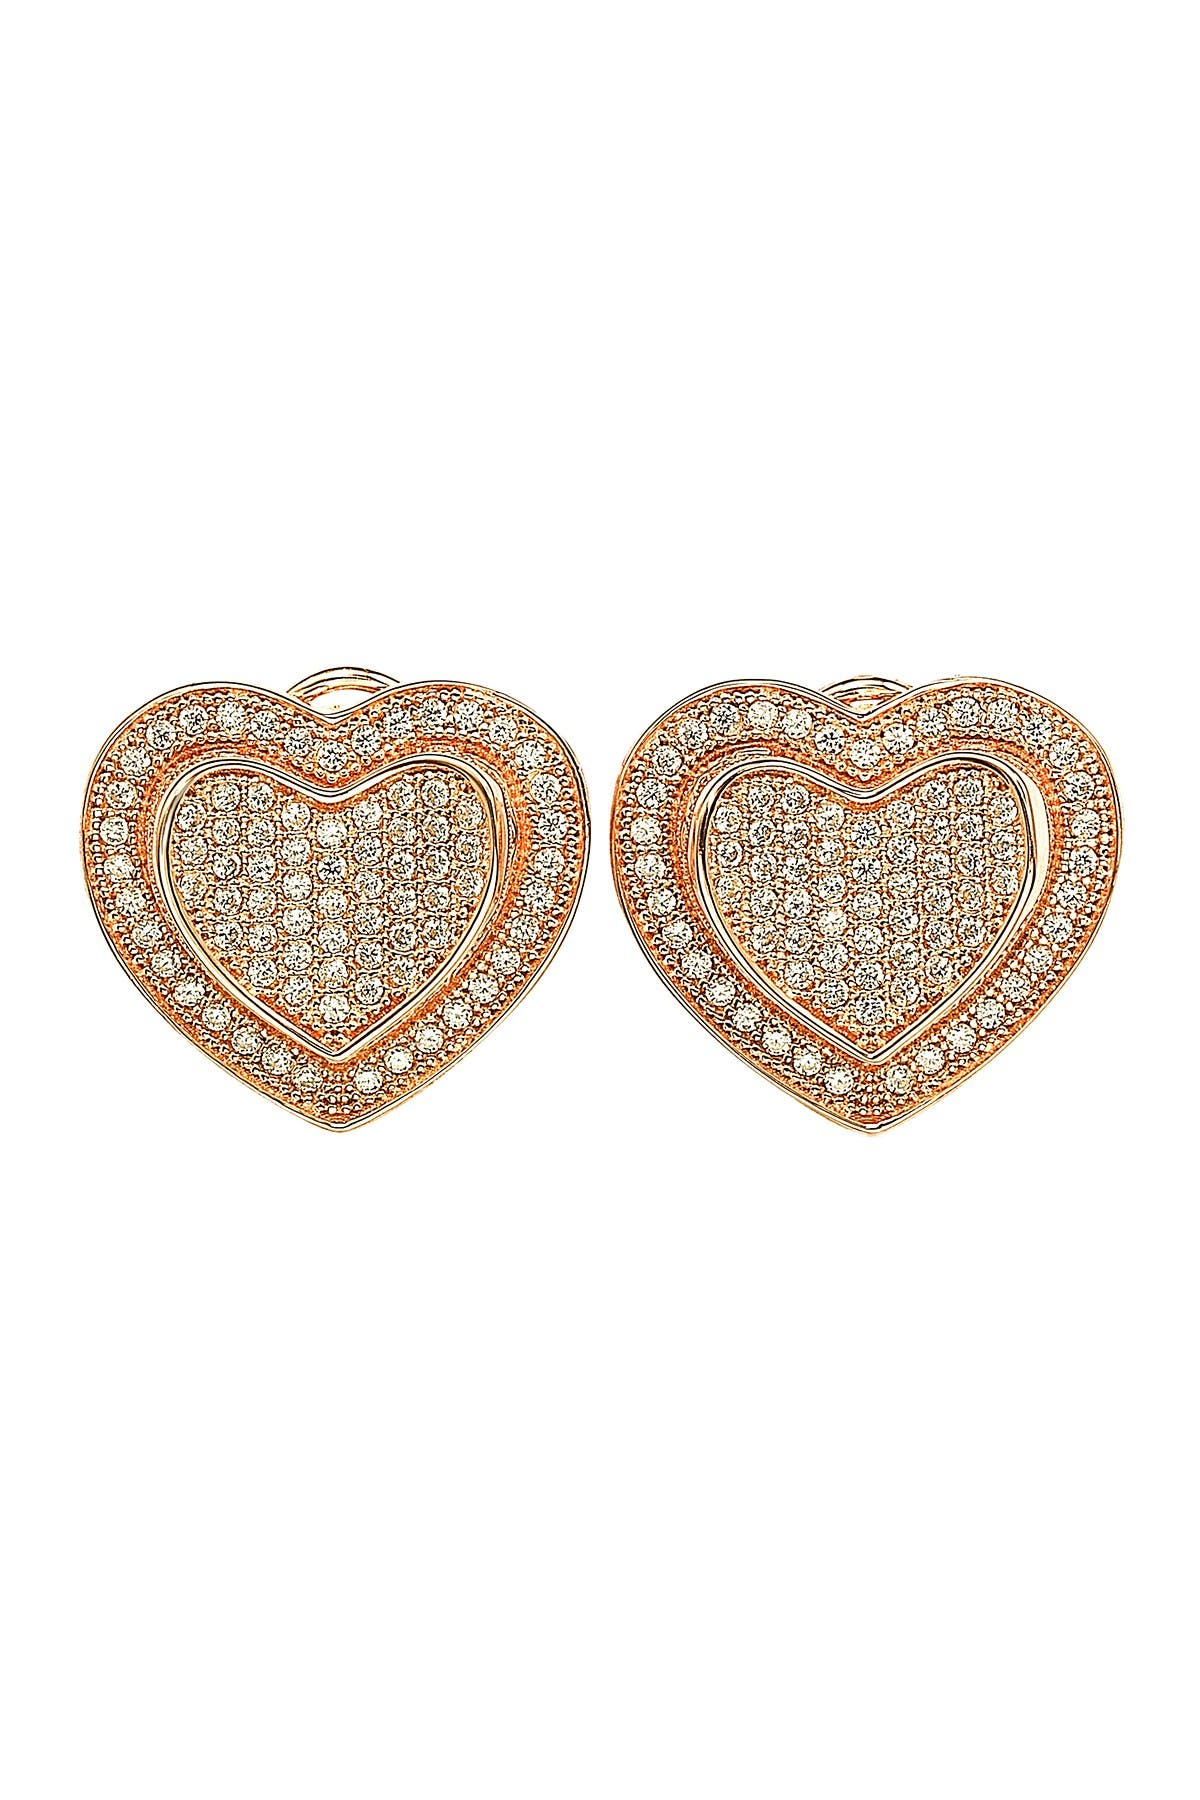 Image of Suzy Levian Rose Gold-Tone Sterling Silver Pave CZ 'Loving Heart' Stud Earrings